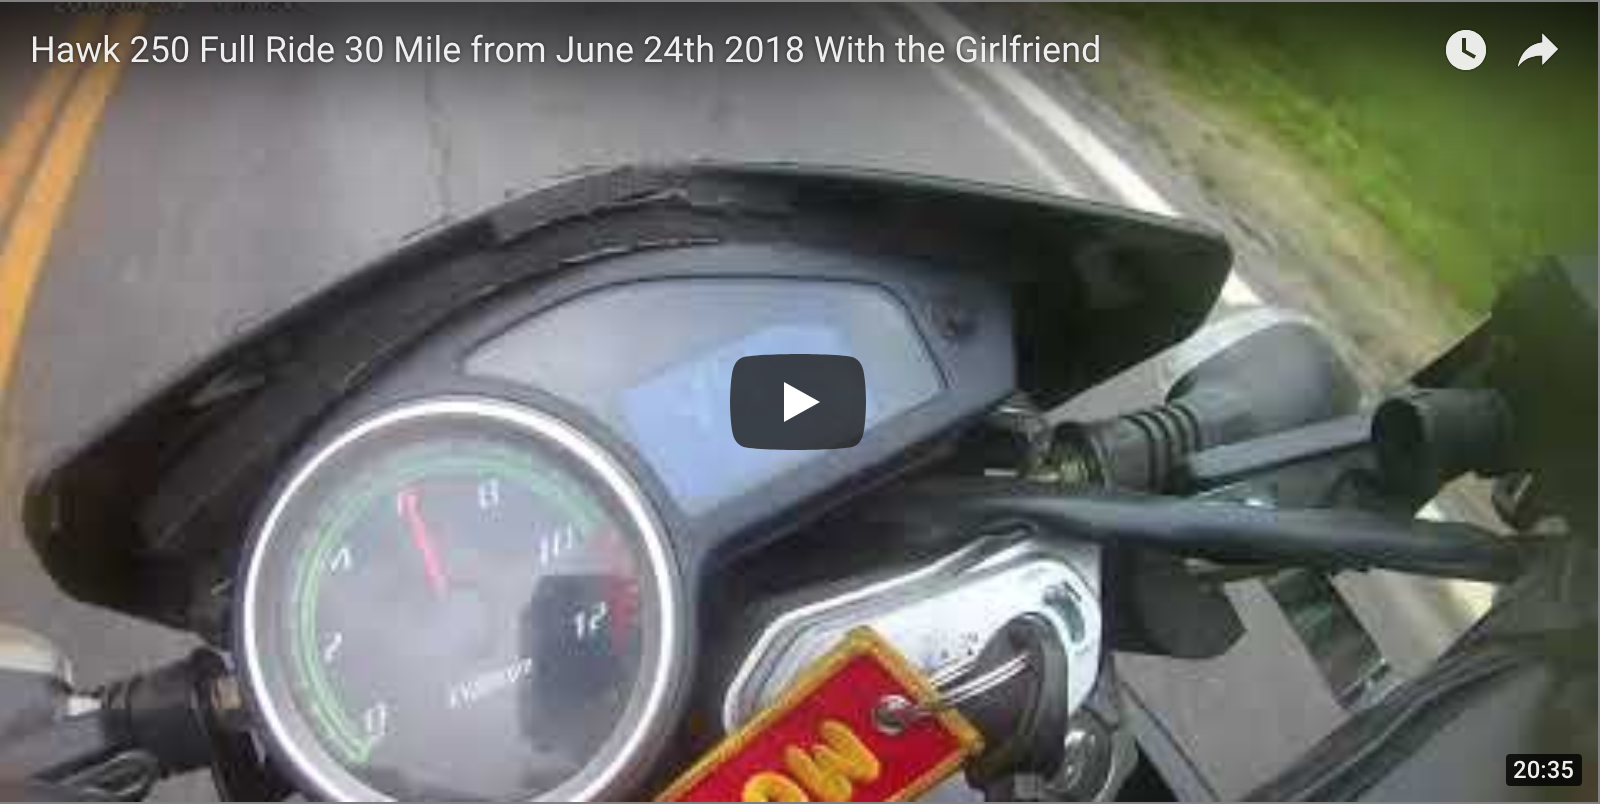 June 24th 30 Mile Ride with Dual Sport and Girlfriend Video